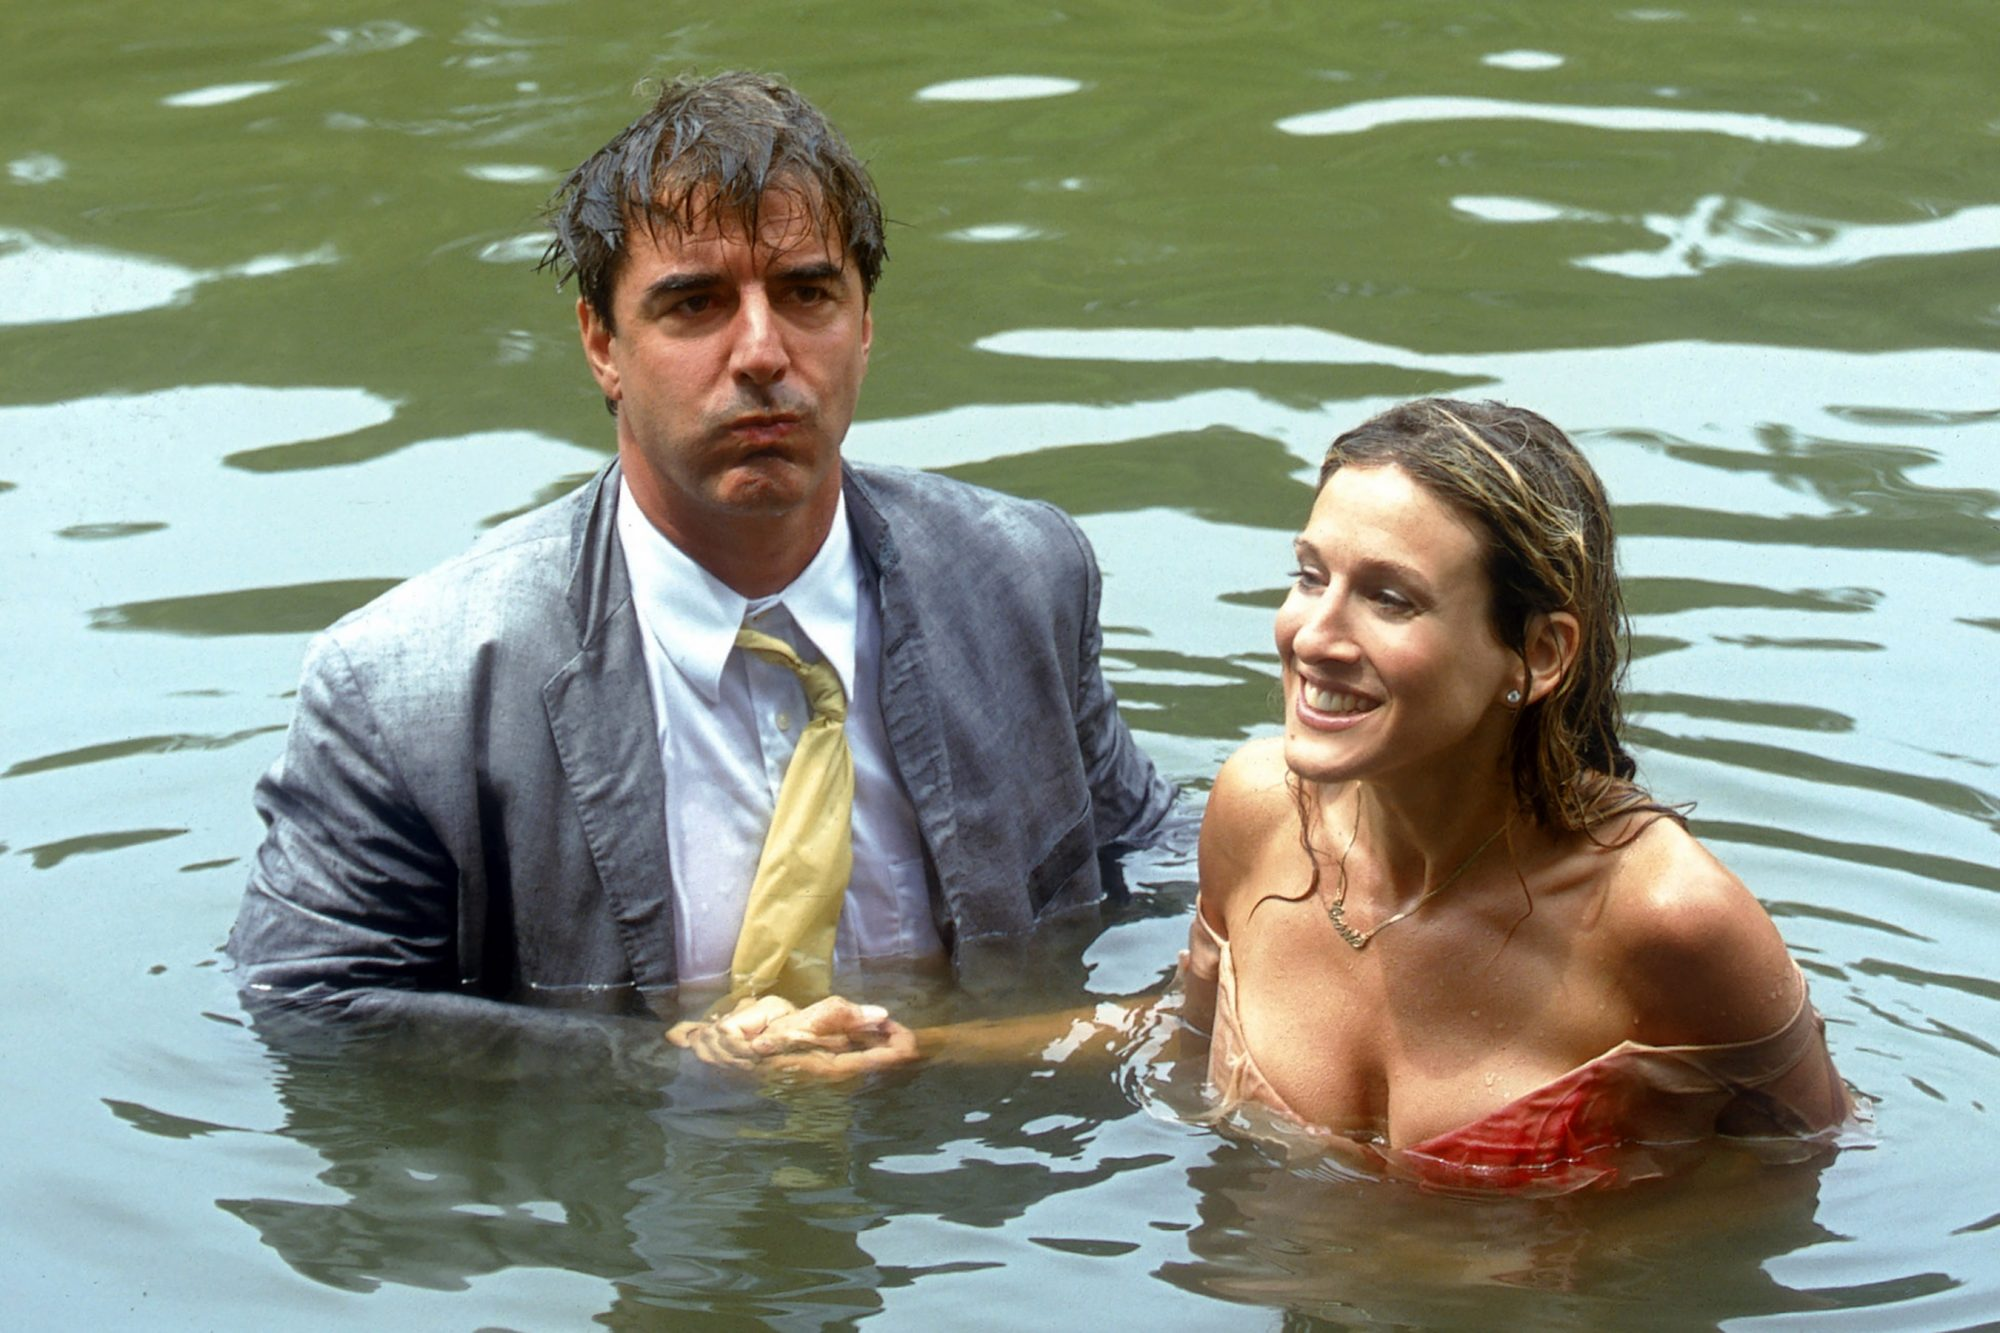 SEX AND THE CITY, (from left): Chris Noth, Sarah Jessica Parker, 'Cock-A-Doodle-Do', (Season 3, ep.